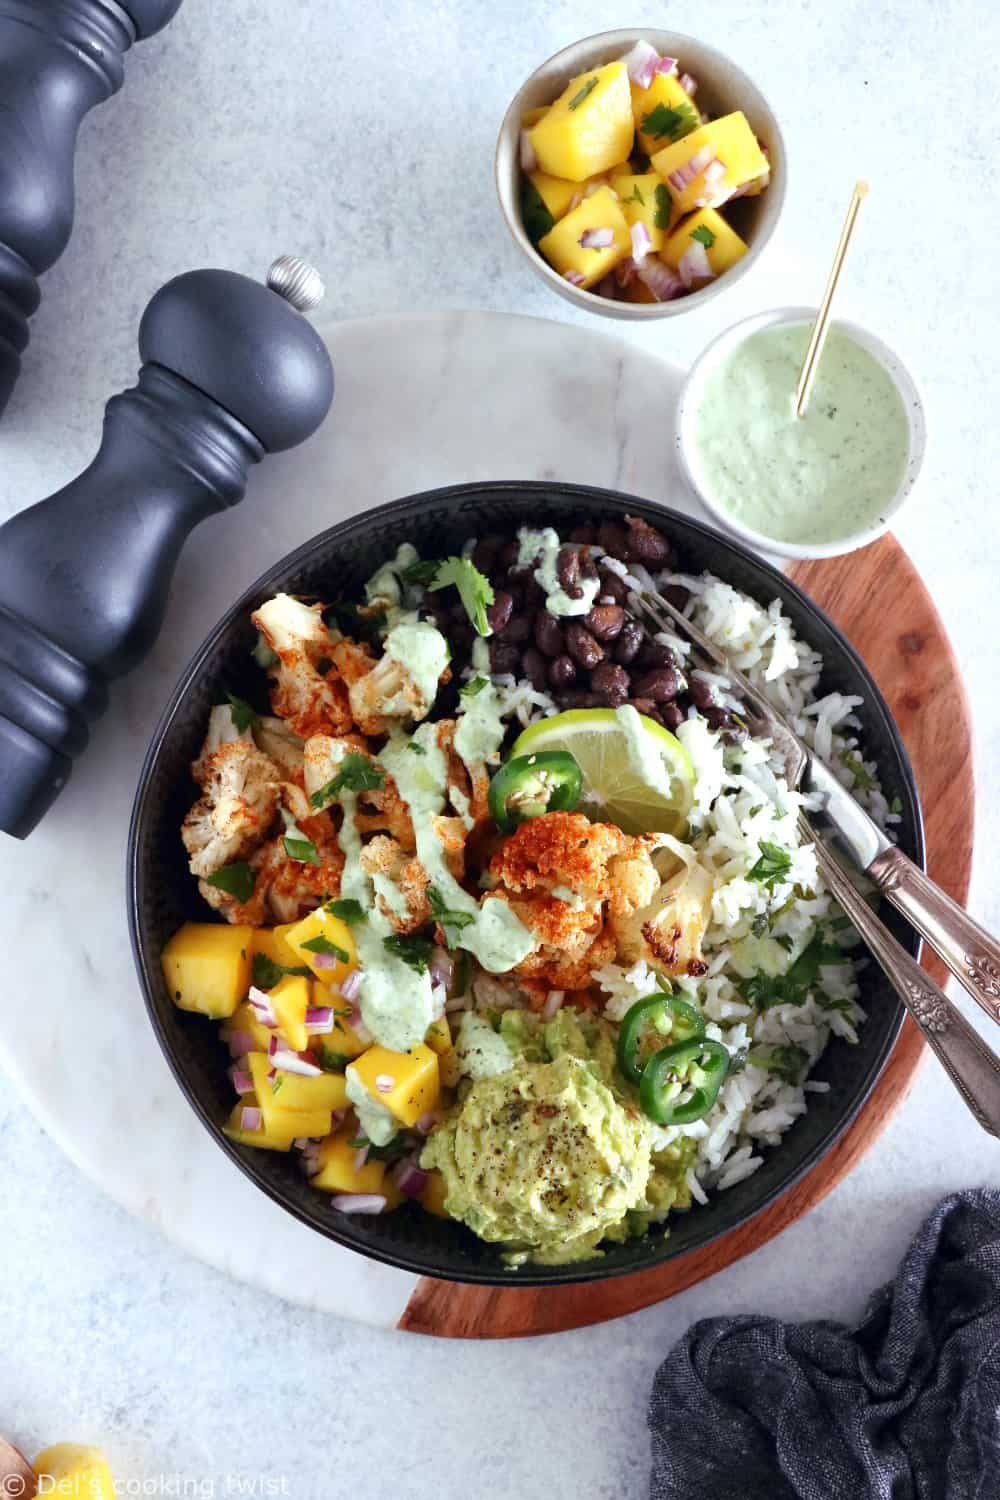 Healthy, colorful, and satisfying, this vegetarian cauliflower burrito bowl will brighten up your lunch game.